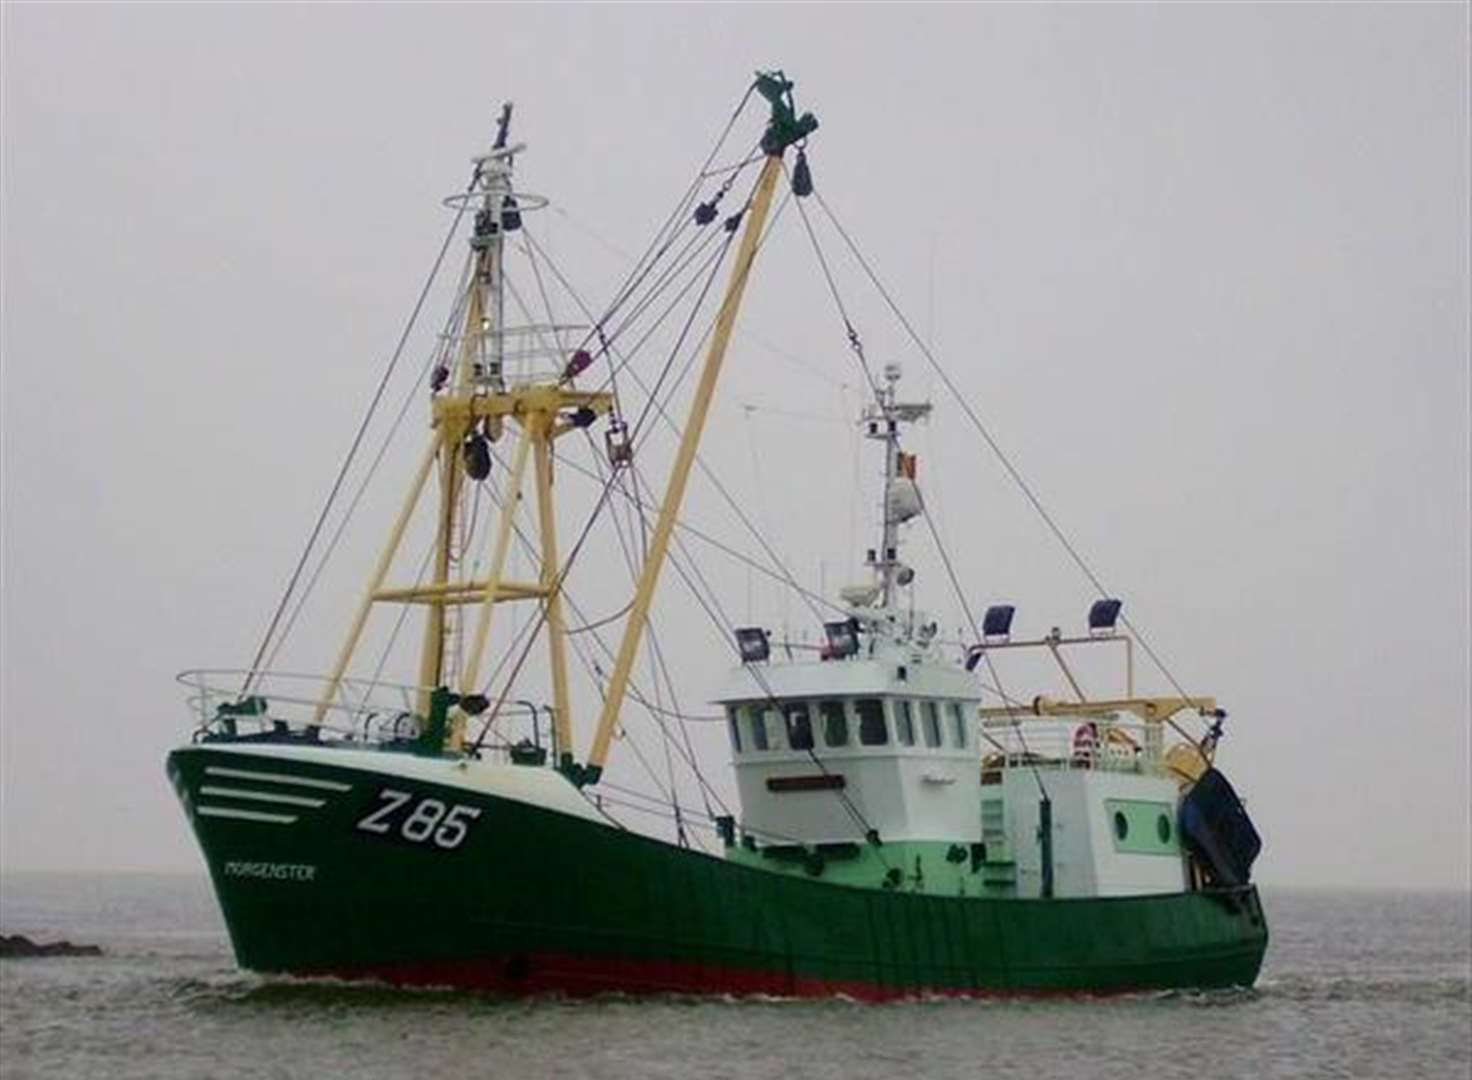 Missing fishing boat wreckage found